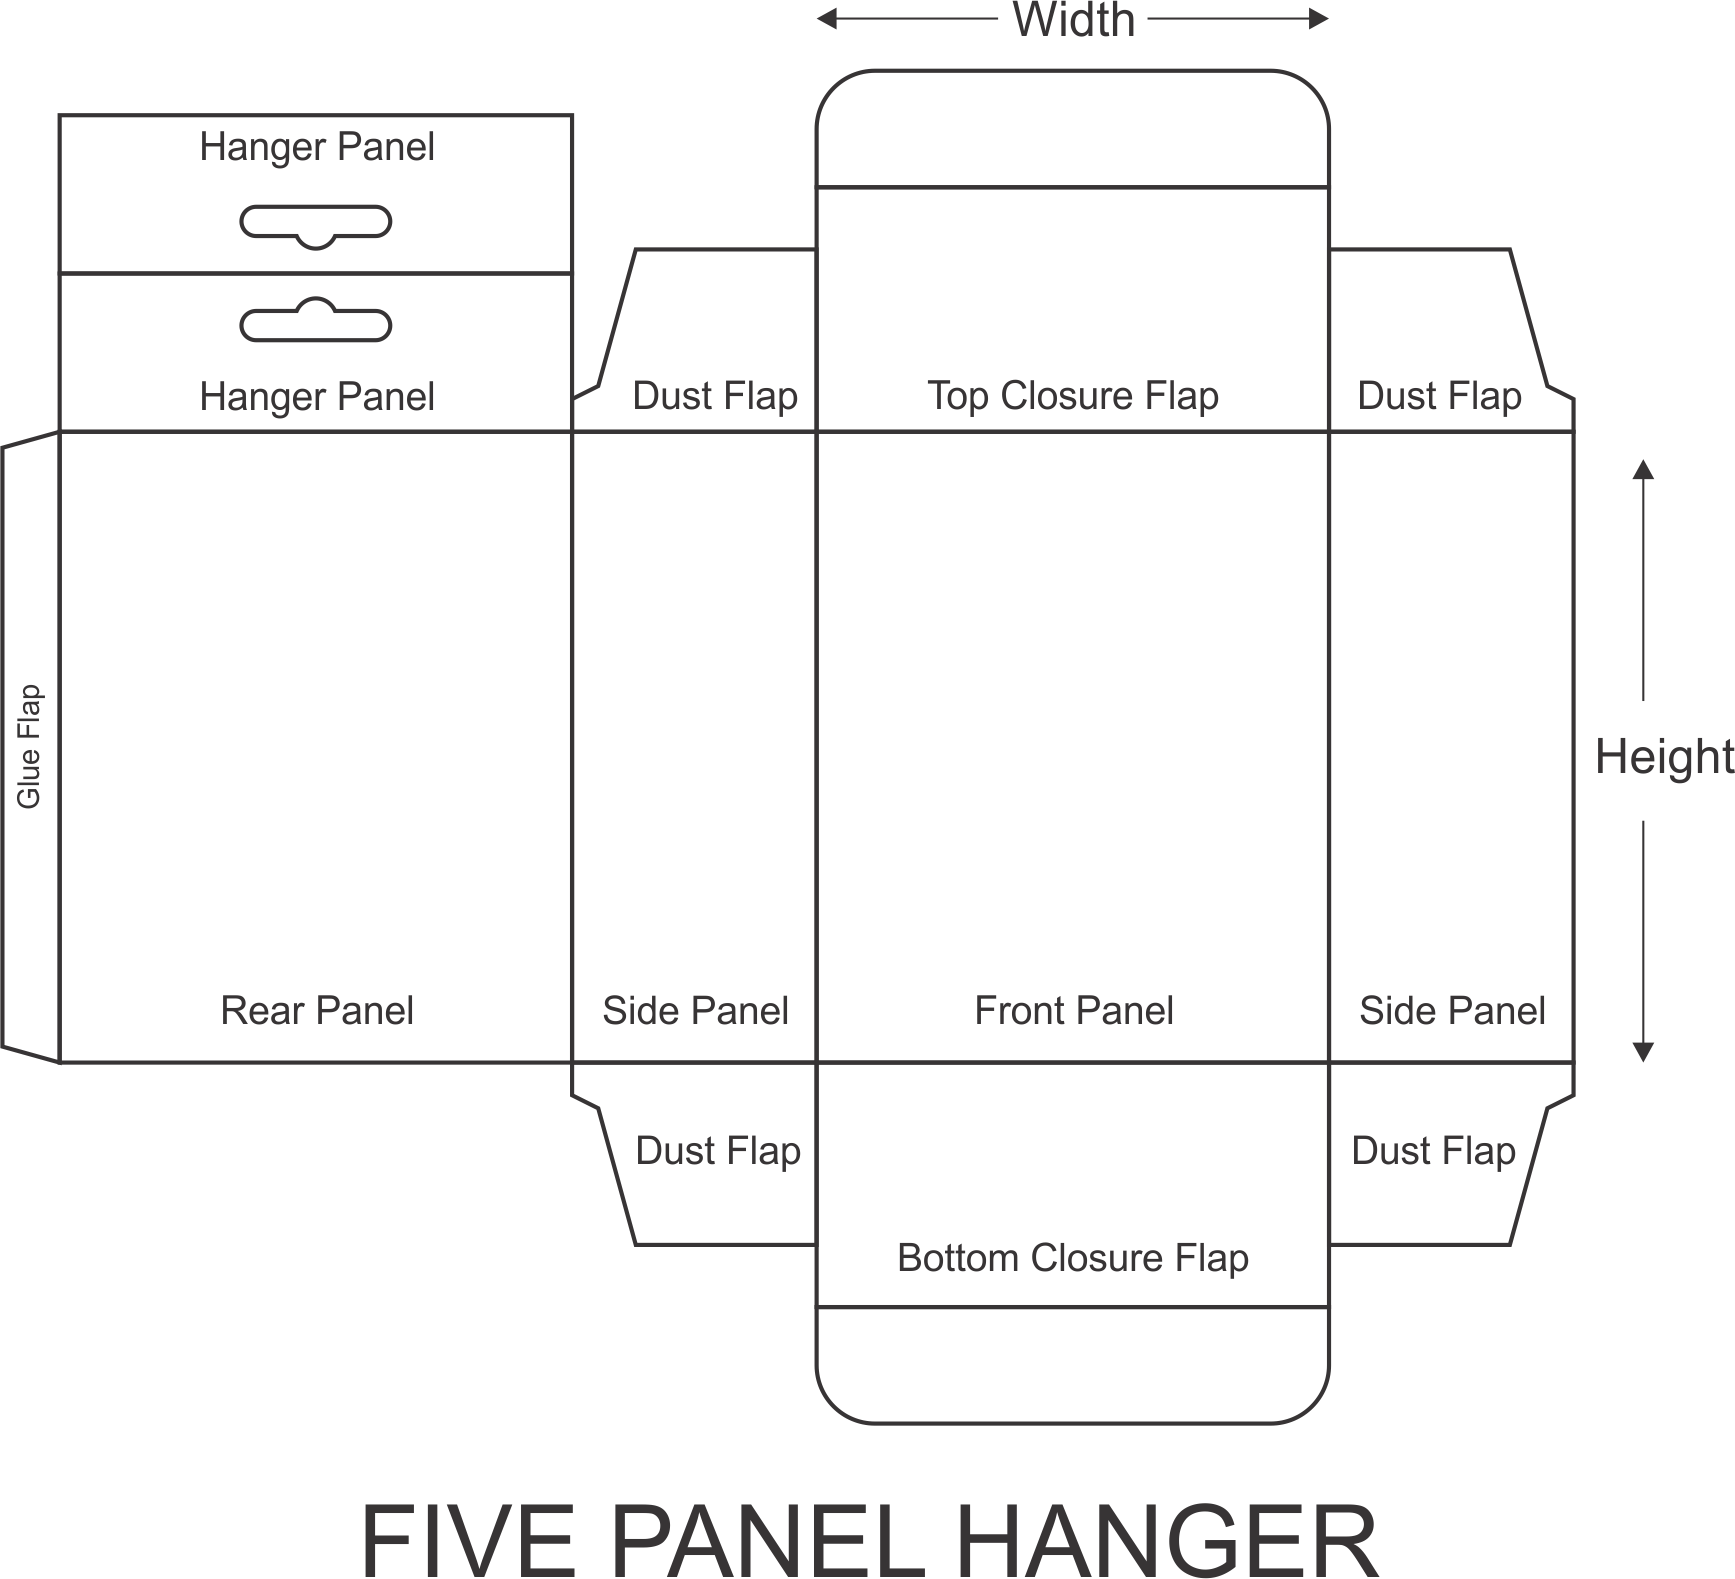 Five Panel Hanger Boxes have an prolonged panel on top with a punch hole allowing it to be one of the packaging that can be hanged on walls, cabinets etc.